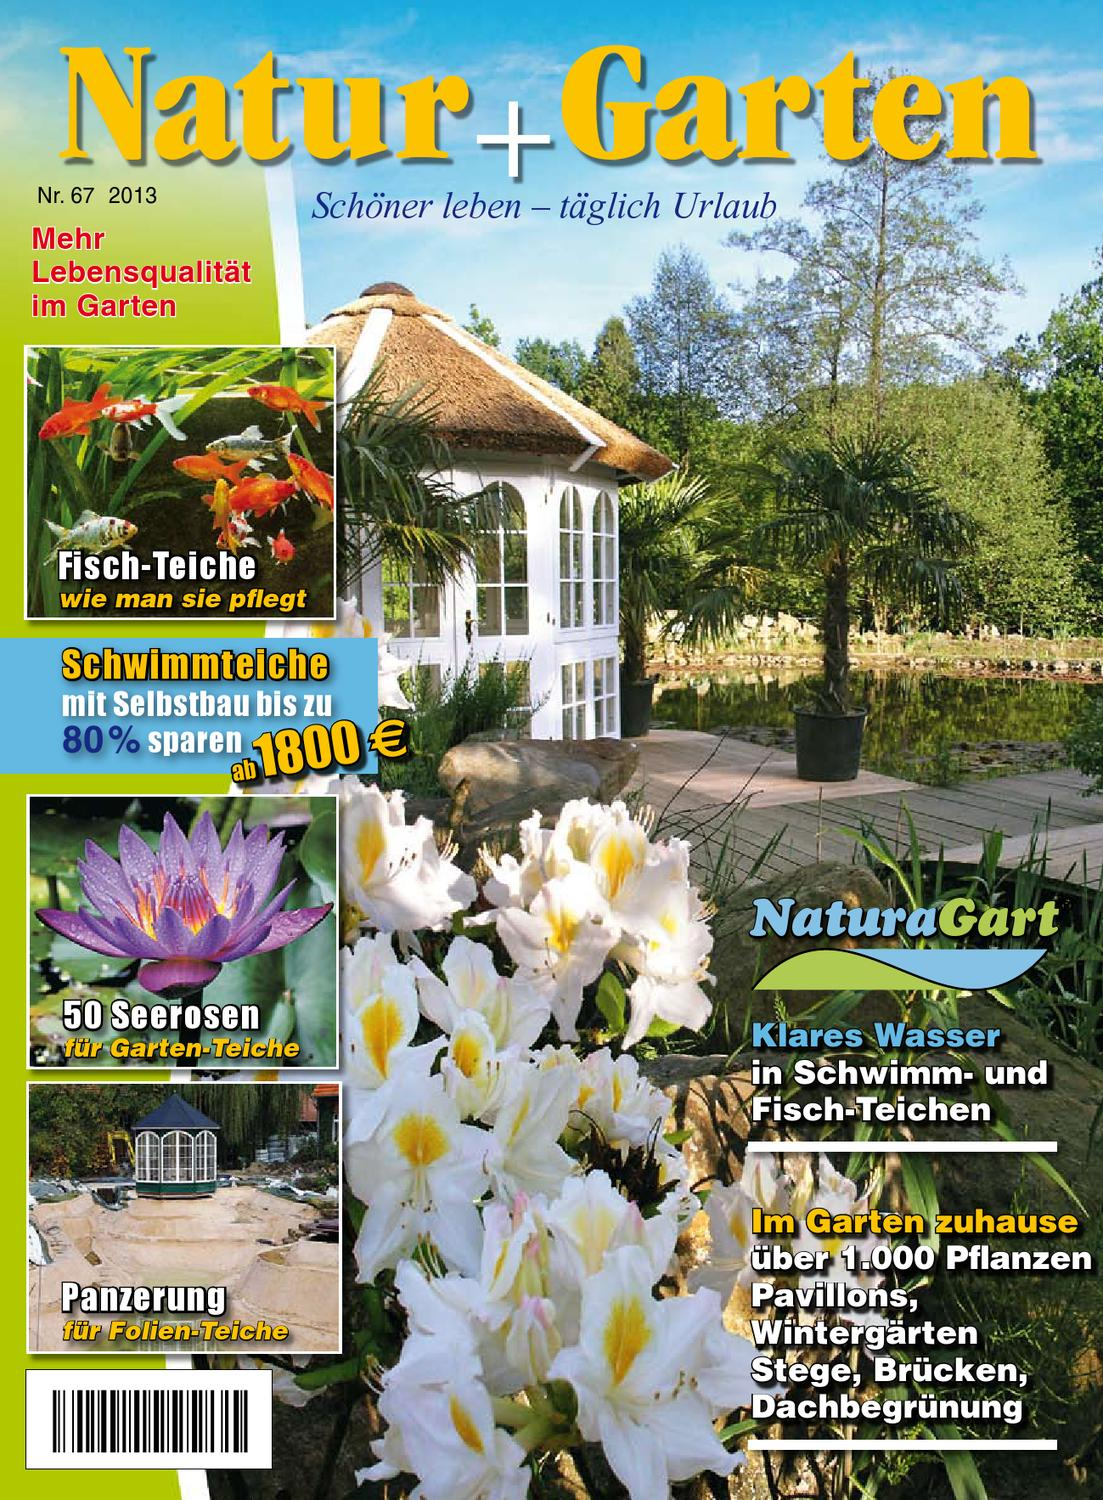 natur und garten der naturagart schwimmteich katalog 2013 by naturagart issuu. Black Bedroom Furniture Sets. Home Design Ideas